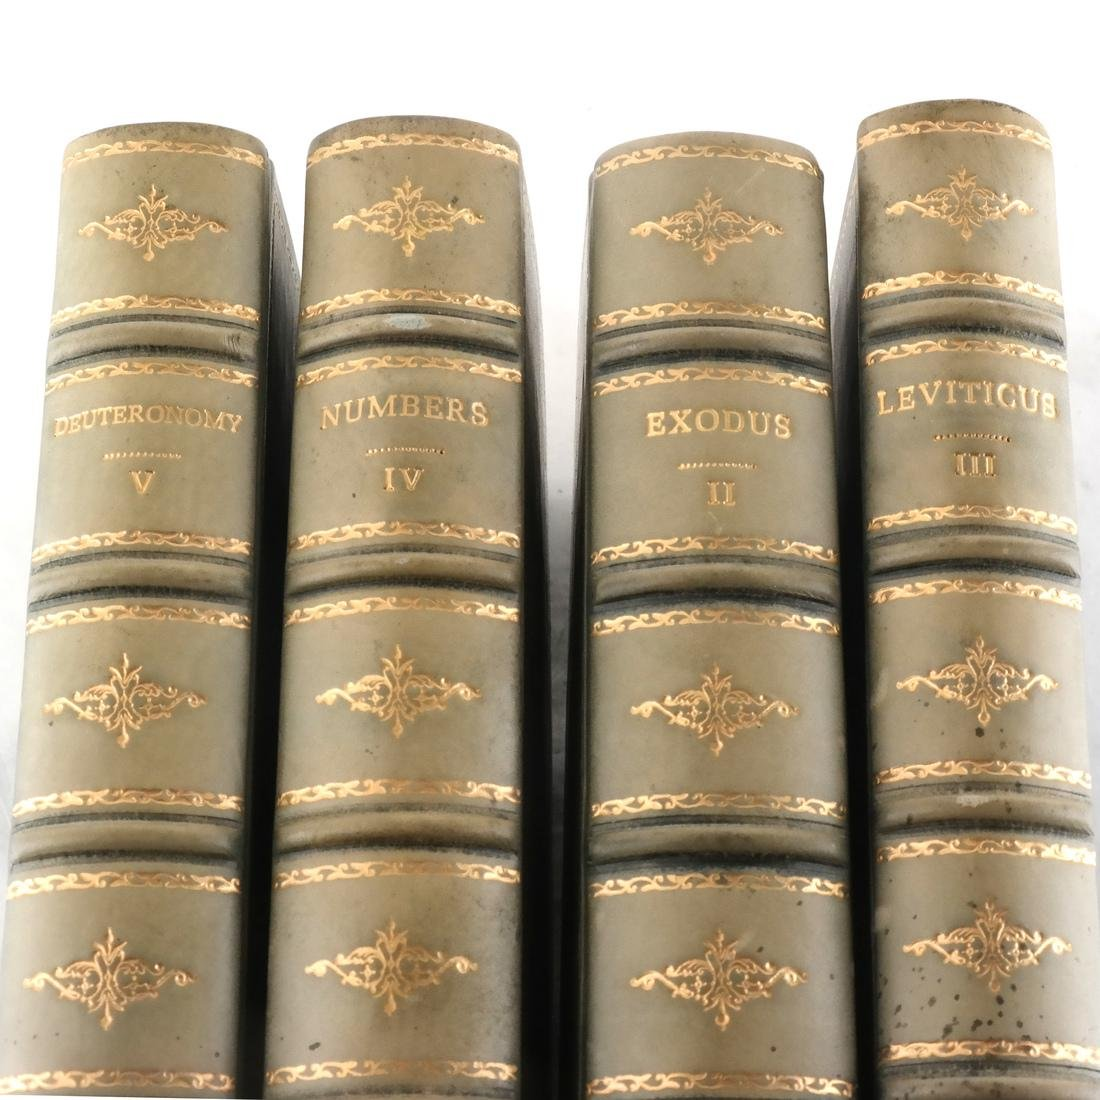 Books: 4 Books of the Bible - 2